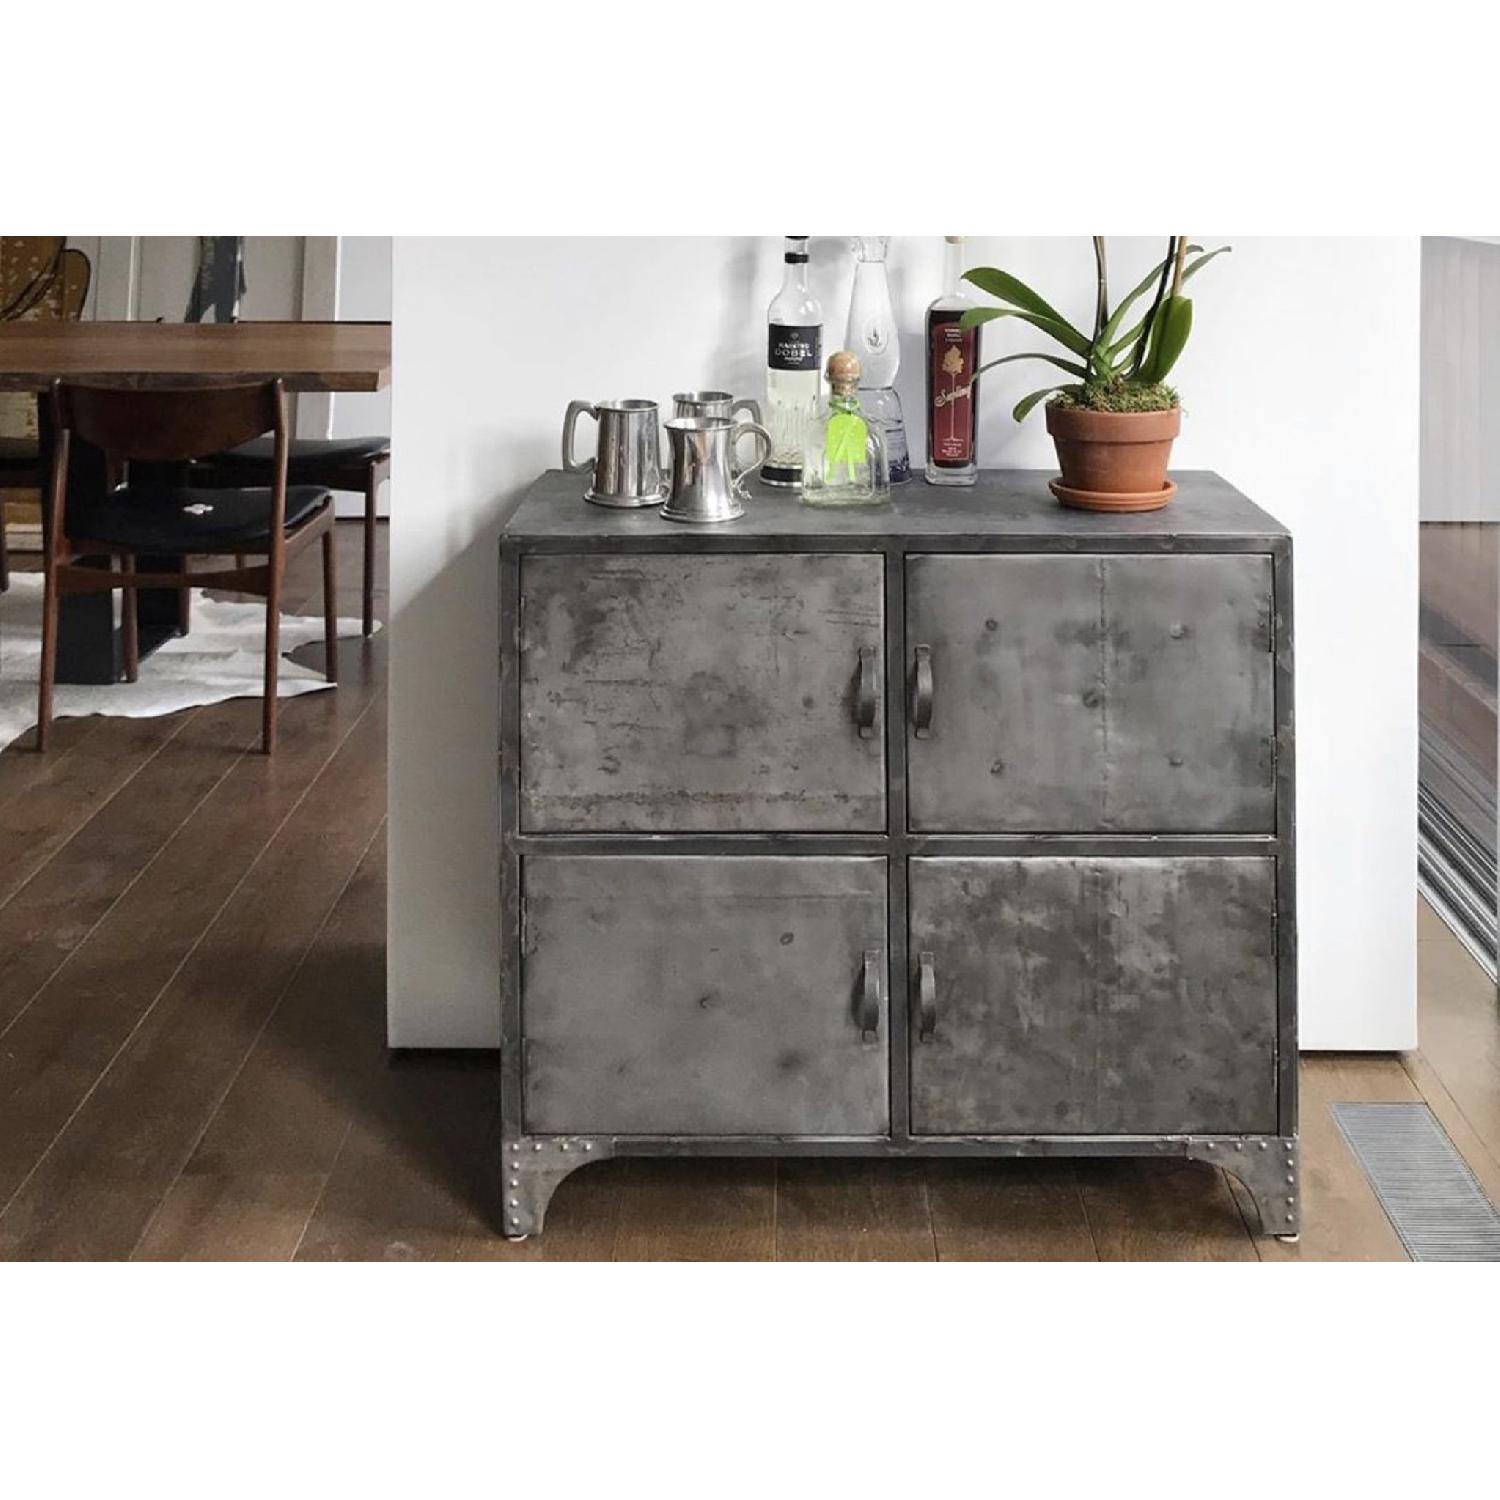 From The Source Recycled Oil Drum 4-Door Designer Cabinet - image-8